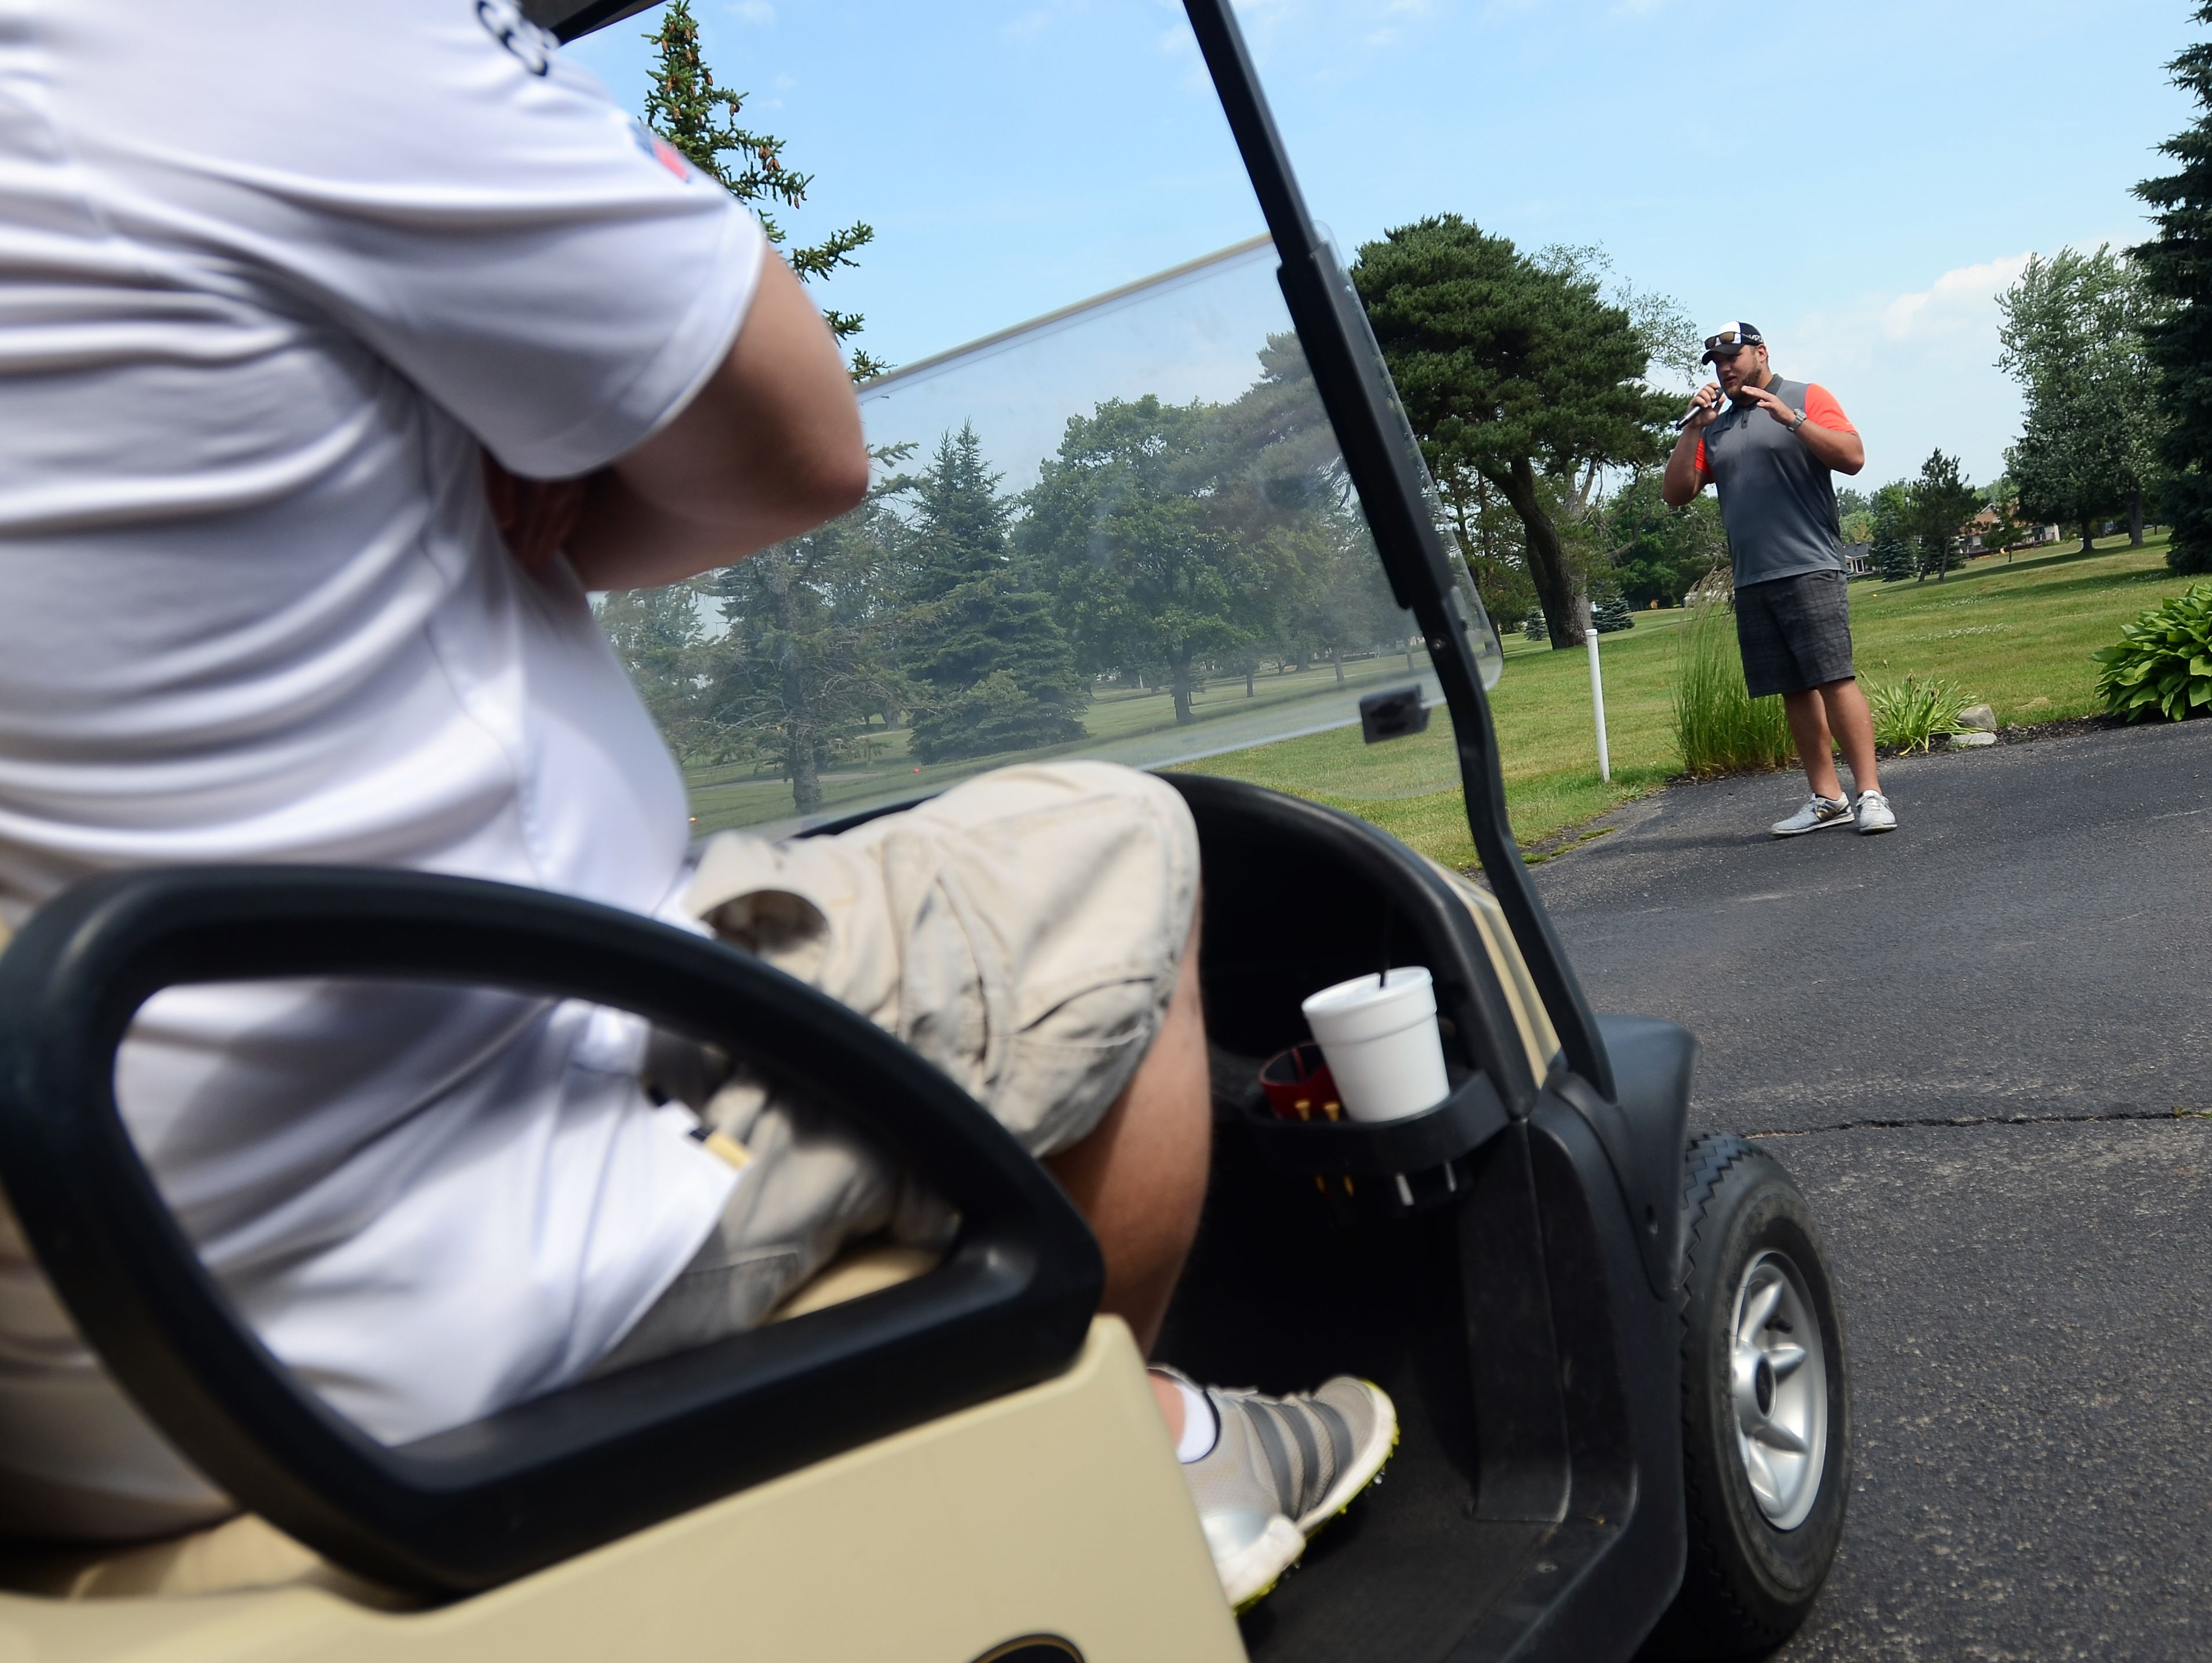 Tim Lelito addresses the golfers and thanks them for coming out Monday, June 20, for the Lelito Legacy Golf Outing at St. Clair Golf Cub.